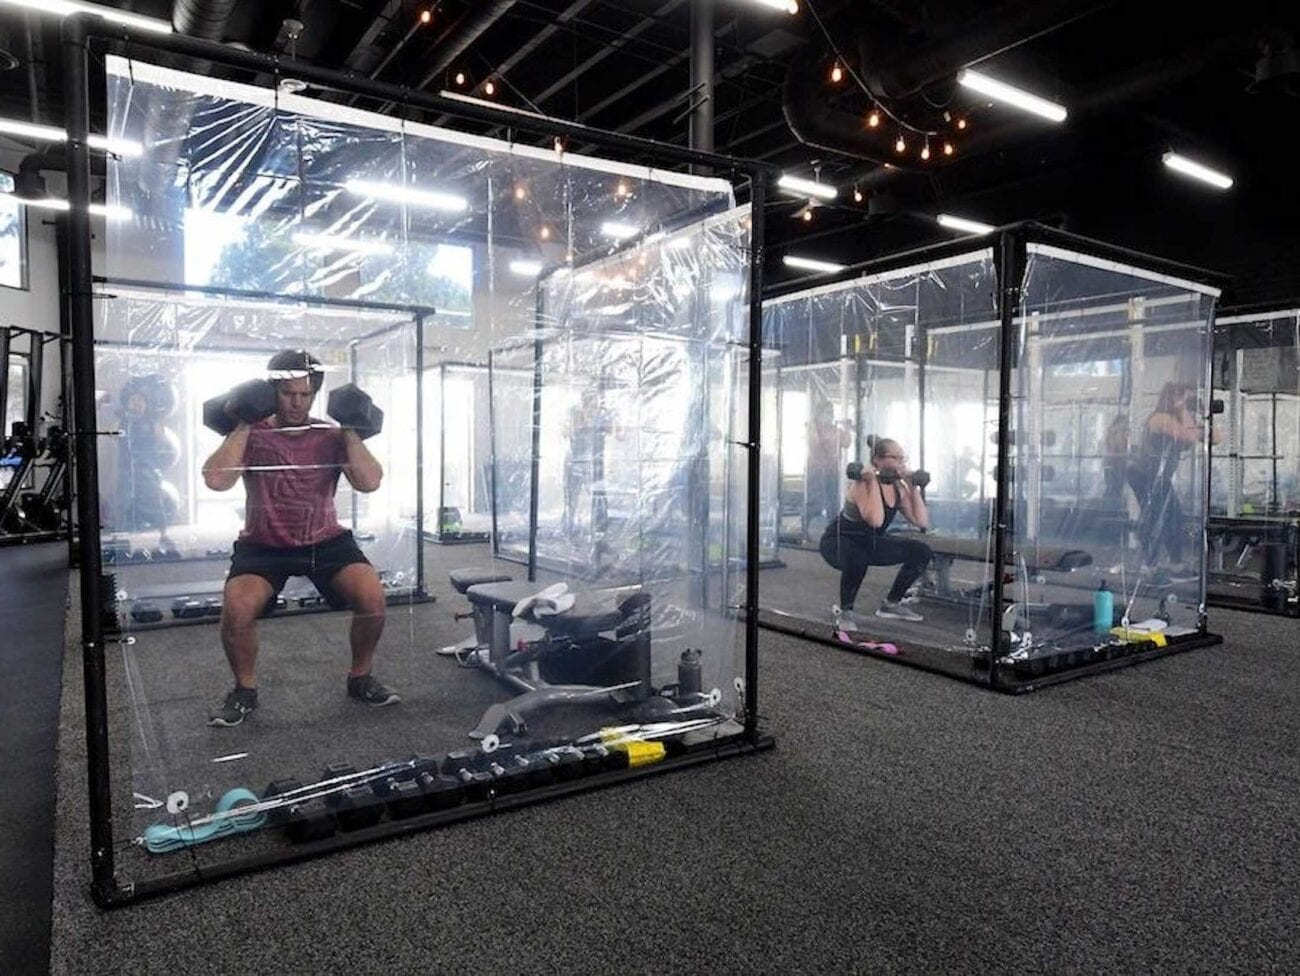 Sick of being stuck indoors and wanting to get your daily workout in? Here's what's happening with 24 hour gyms now.